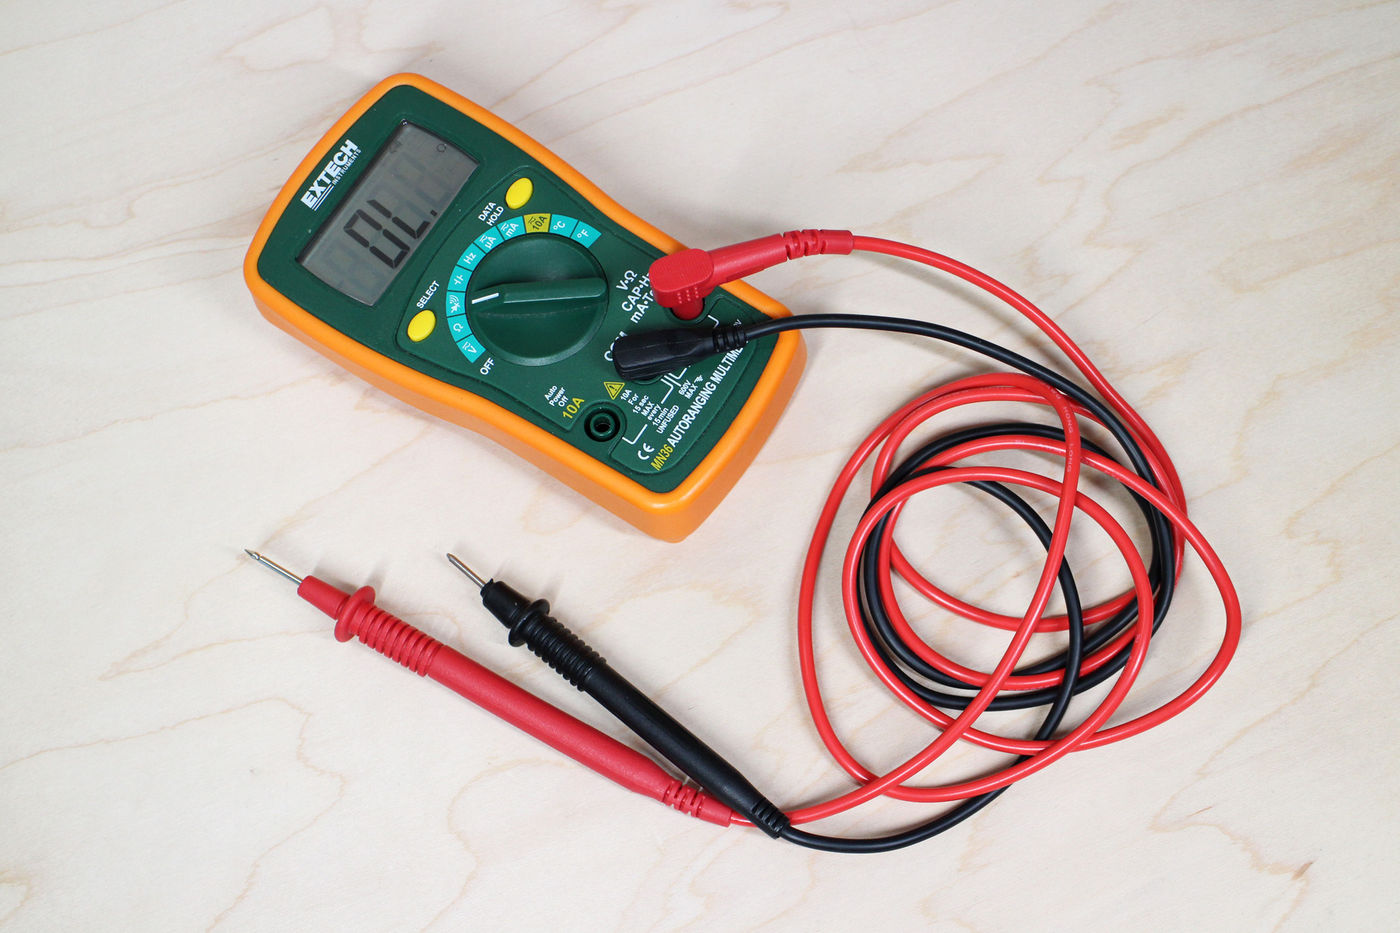 How to Test Using a Multimeter